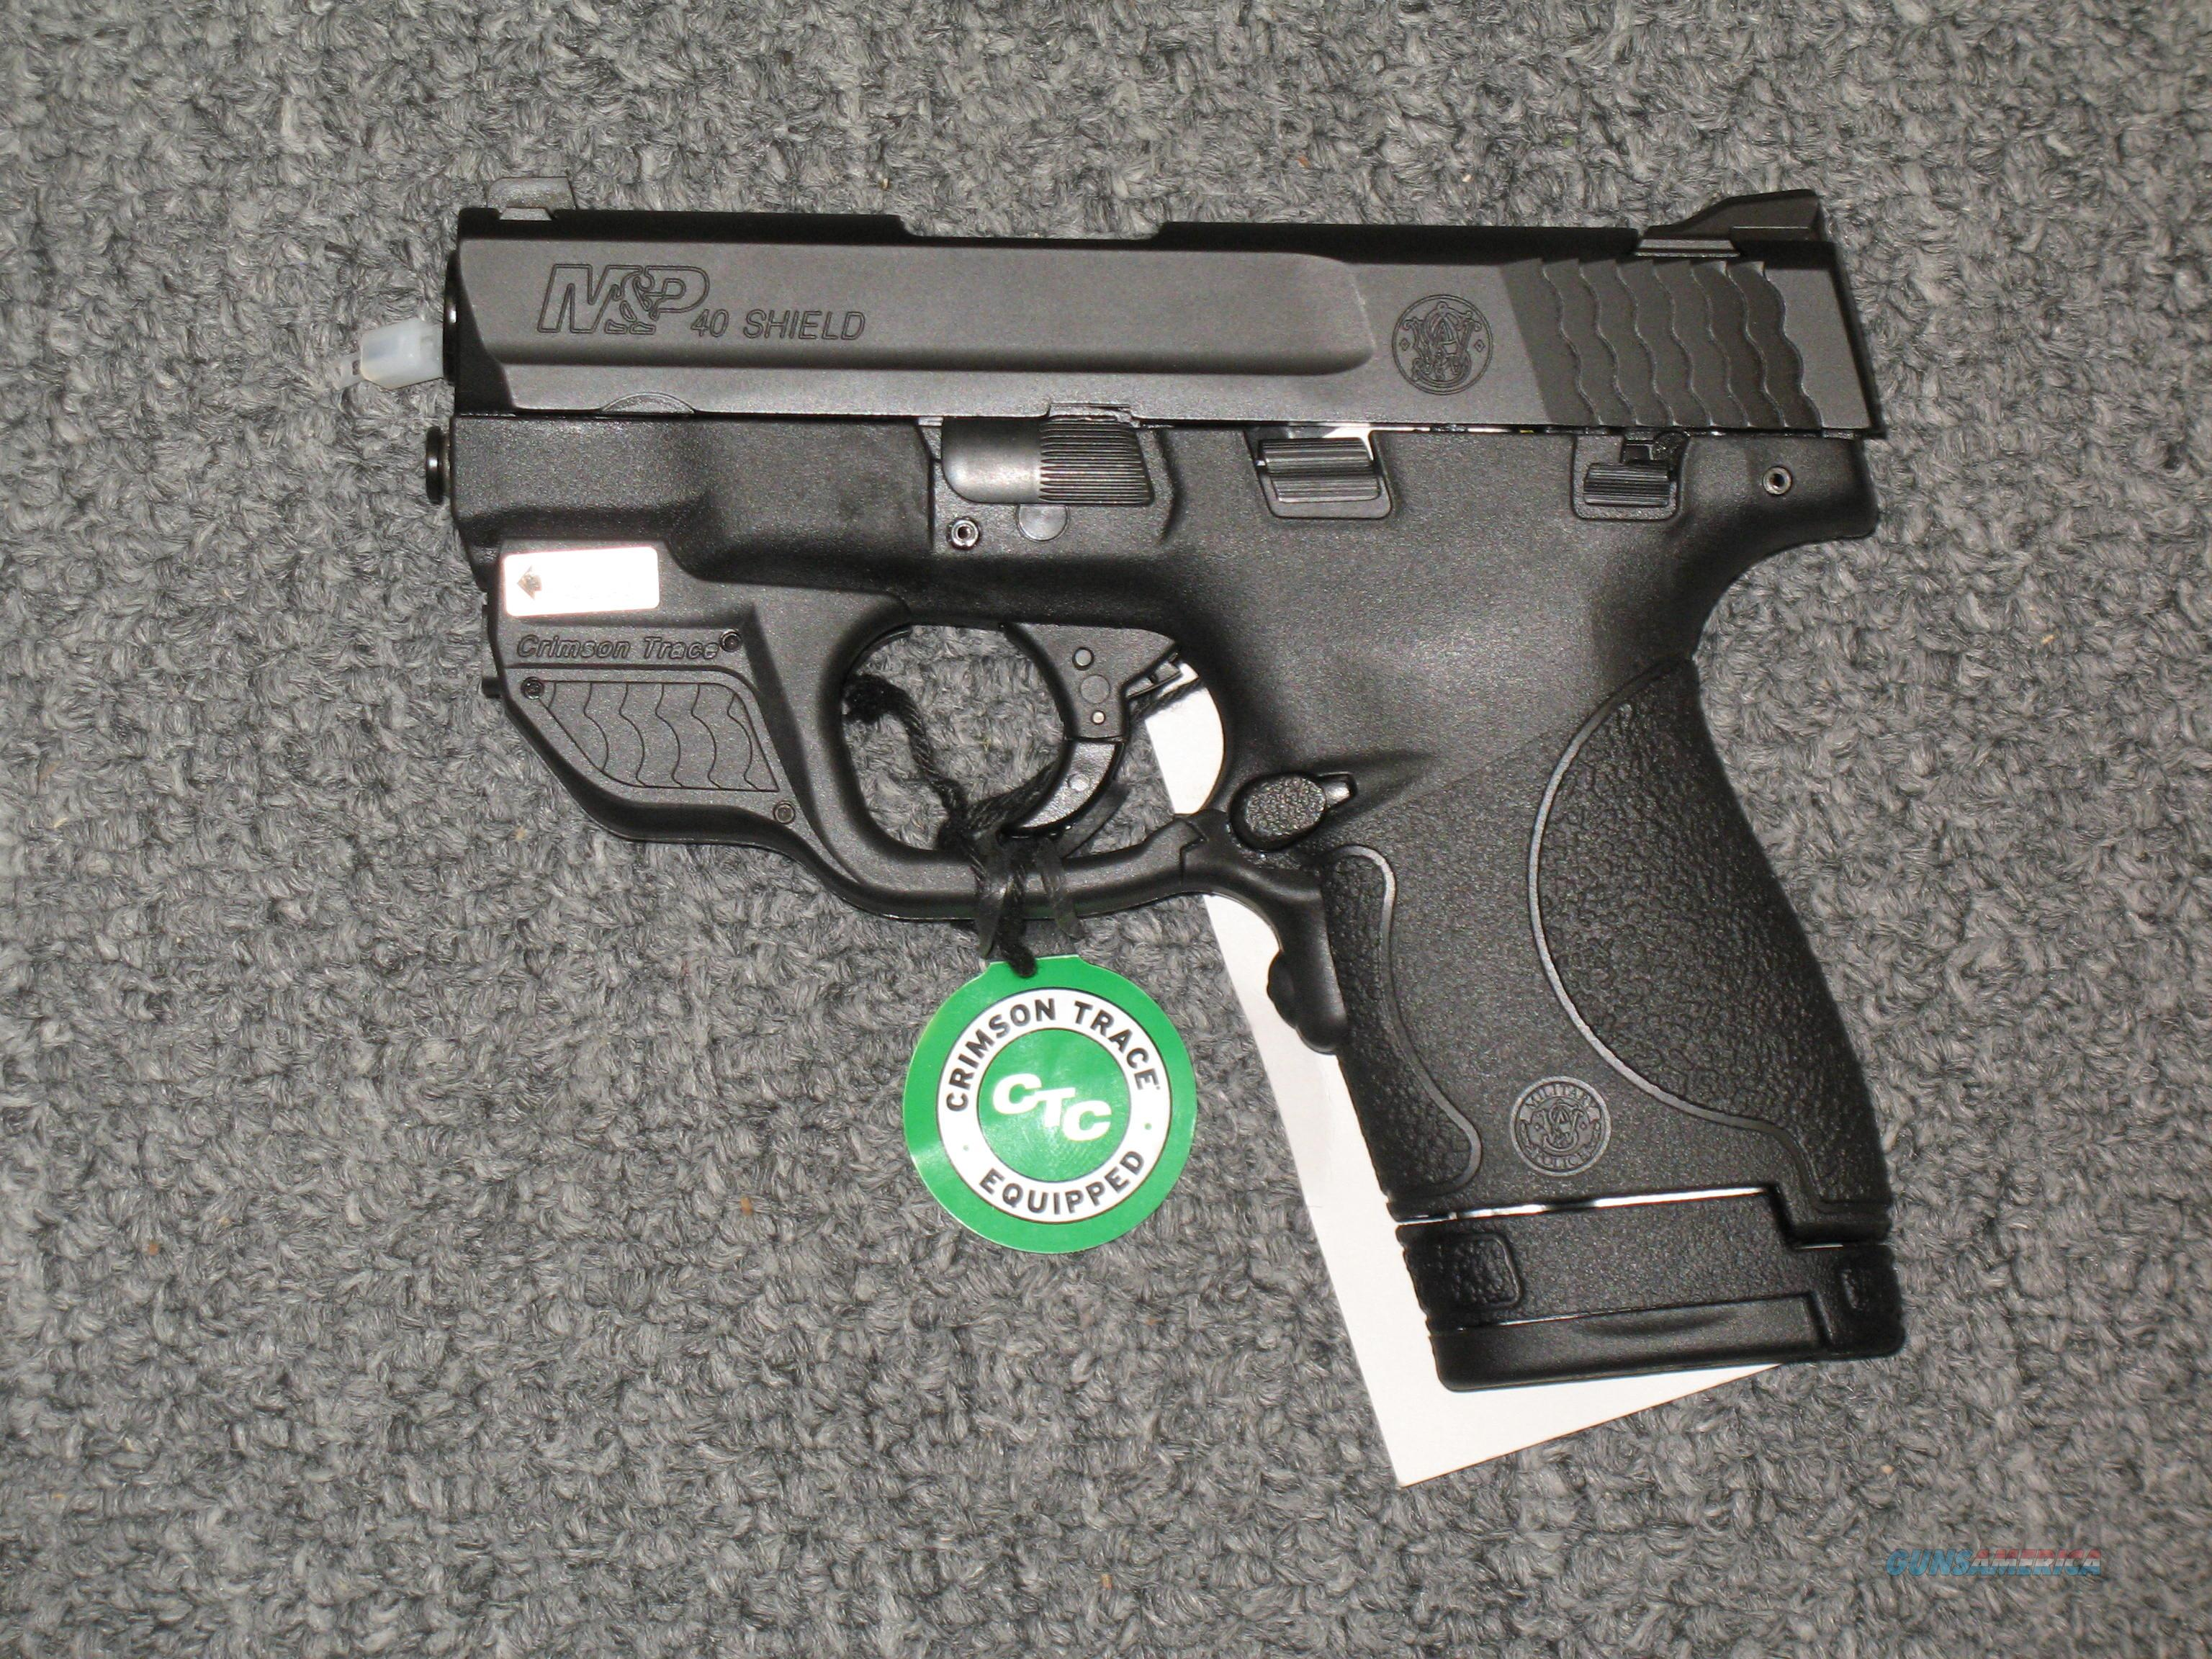 Smith & Wesson M&P 40 Shield with Crimson Trace Green Laser & thumb safety  Guns > Pistols > Smith & Wesson Pistols - Autos > Polymer Frame